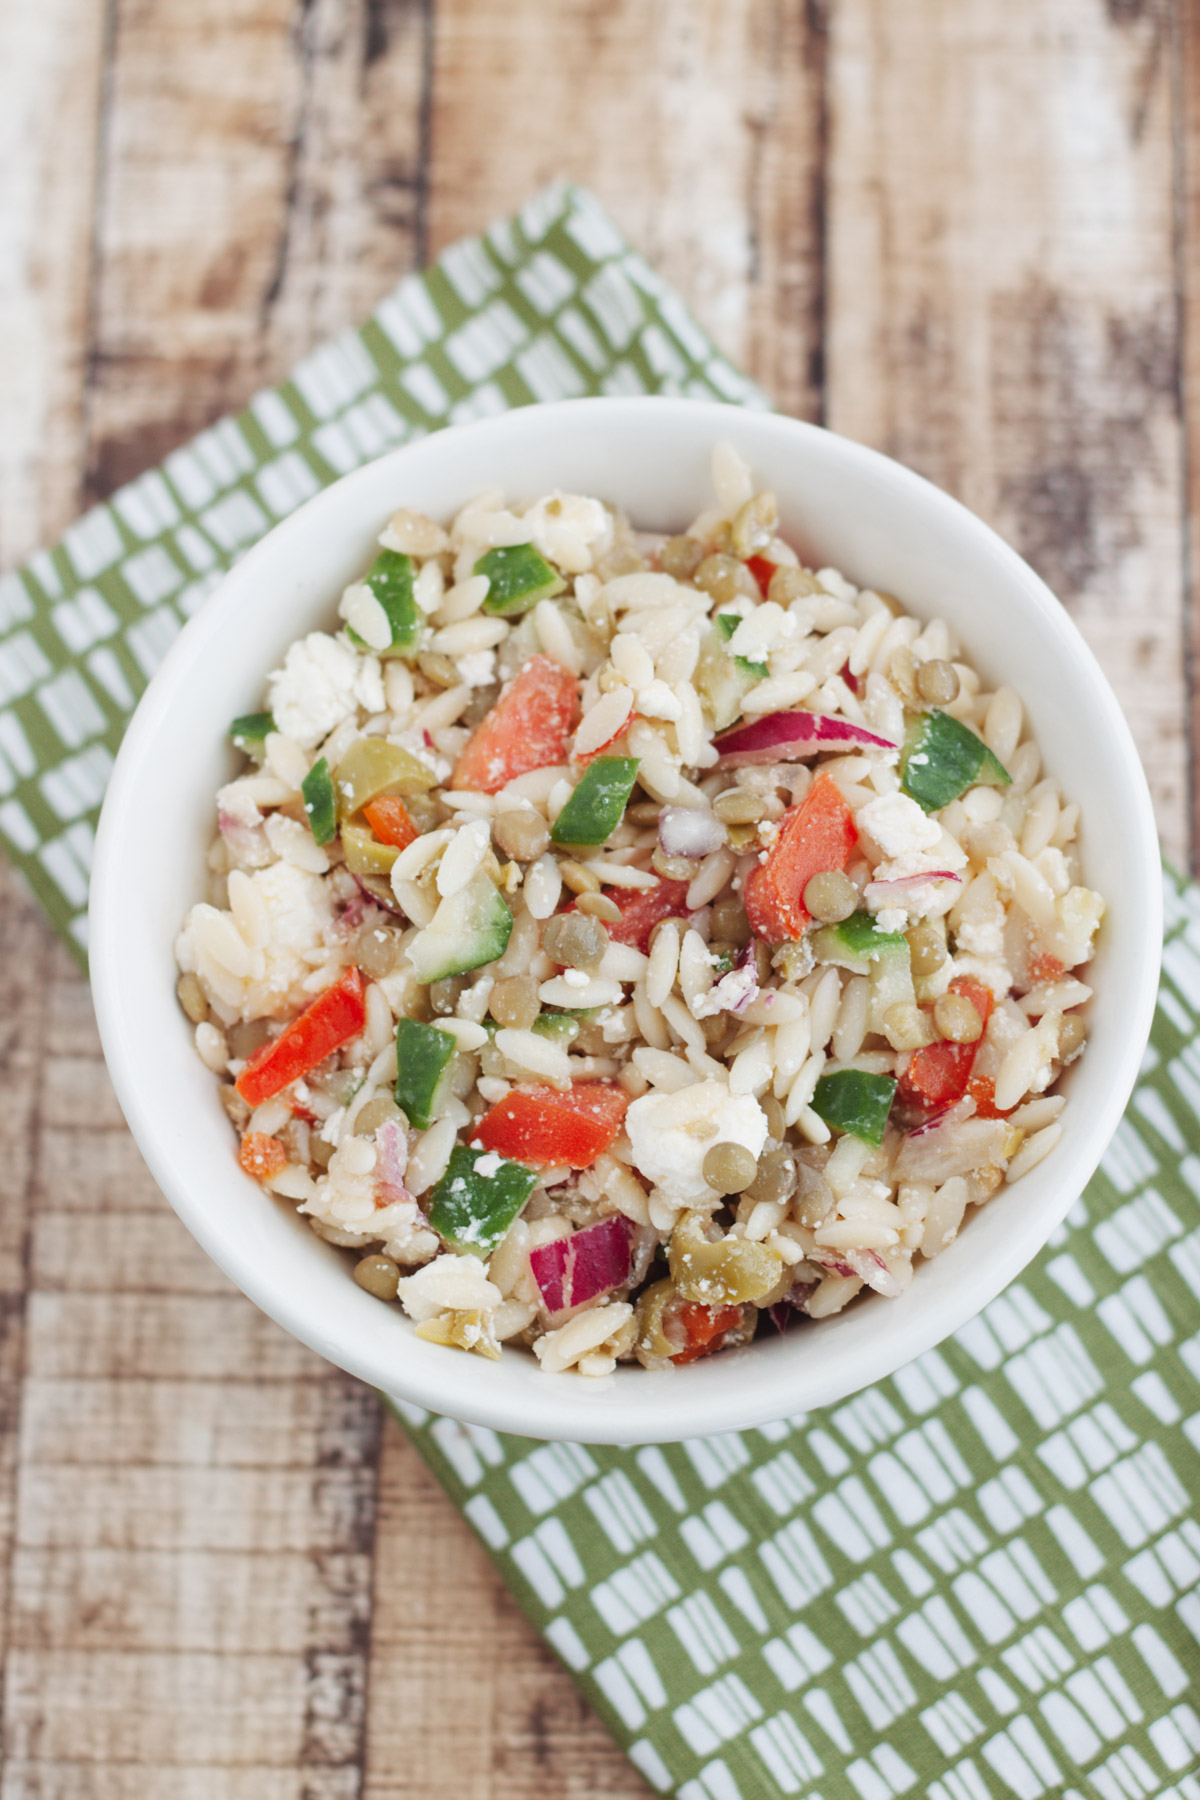 Top view image of Greek Orzo Salad with Lentils in a white bowl on a green and white napkin.